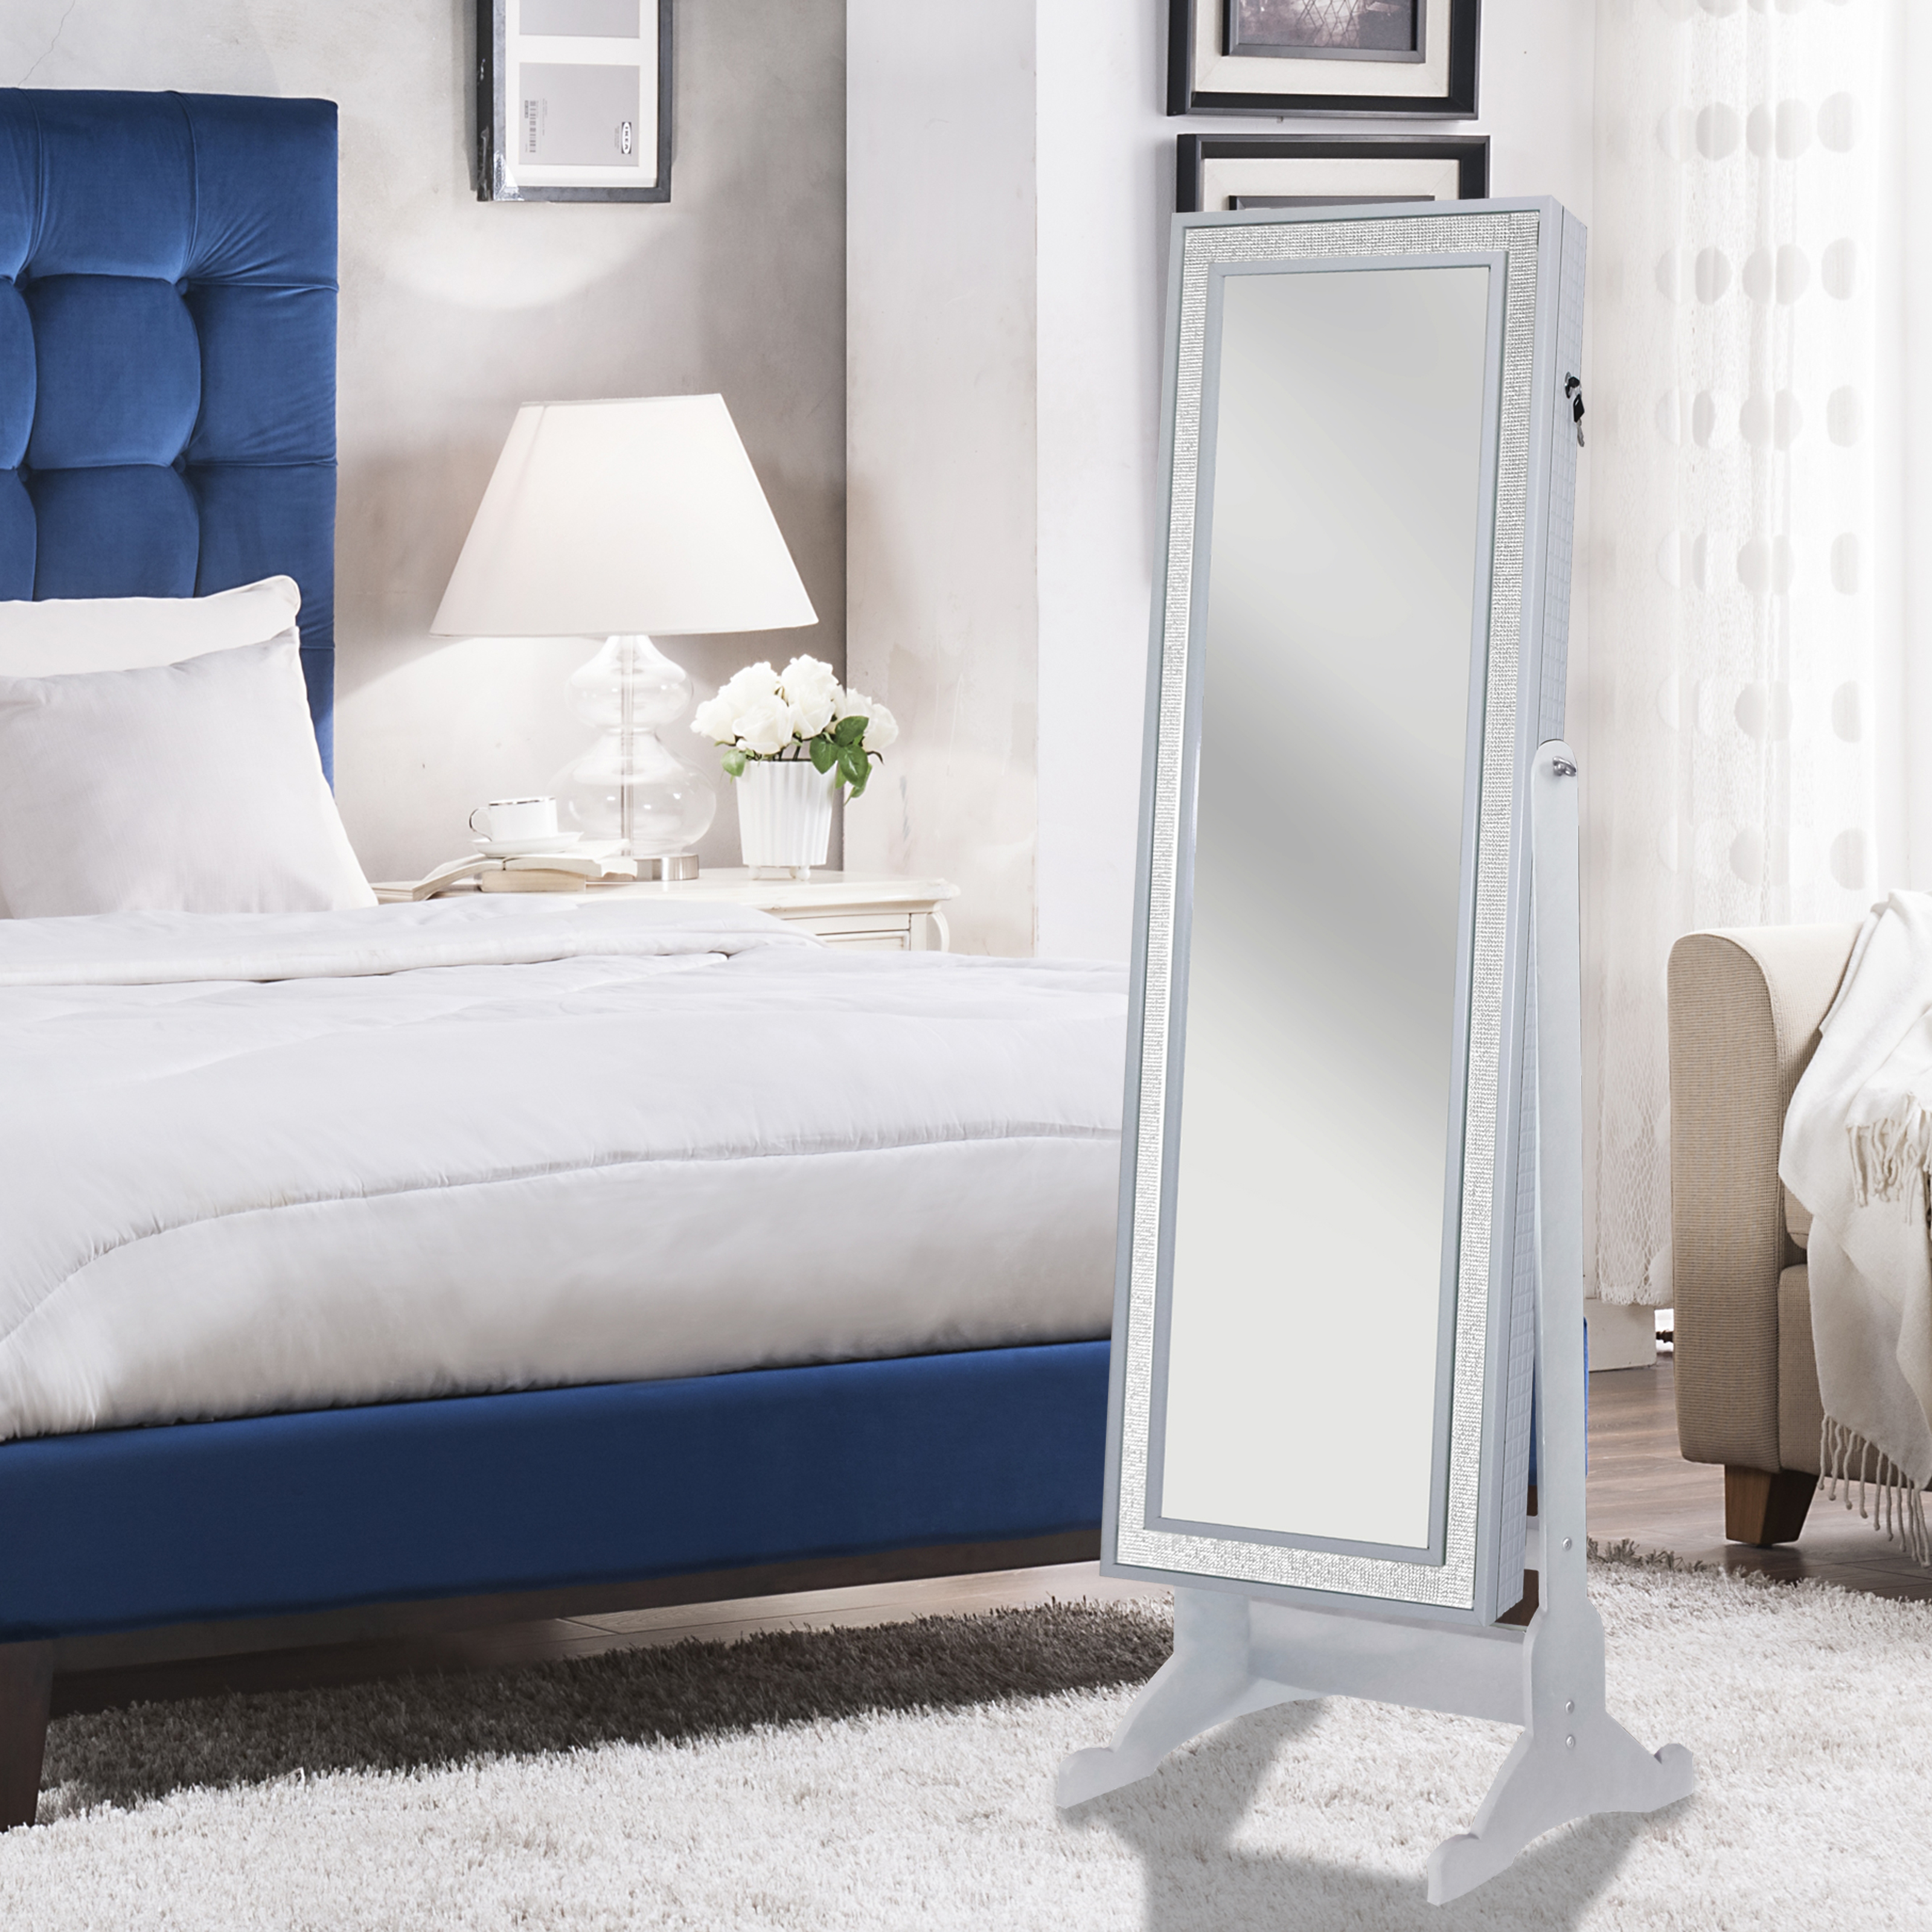 Chic Home Jazzy Modern Contemporary Crystal-Bordered Rectangular Jewelry Armoire Cheval Mirror Full-length - Pristine White 59397fa740f76c3ce91ca3e9